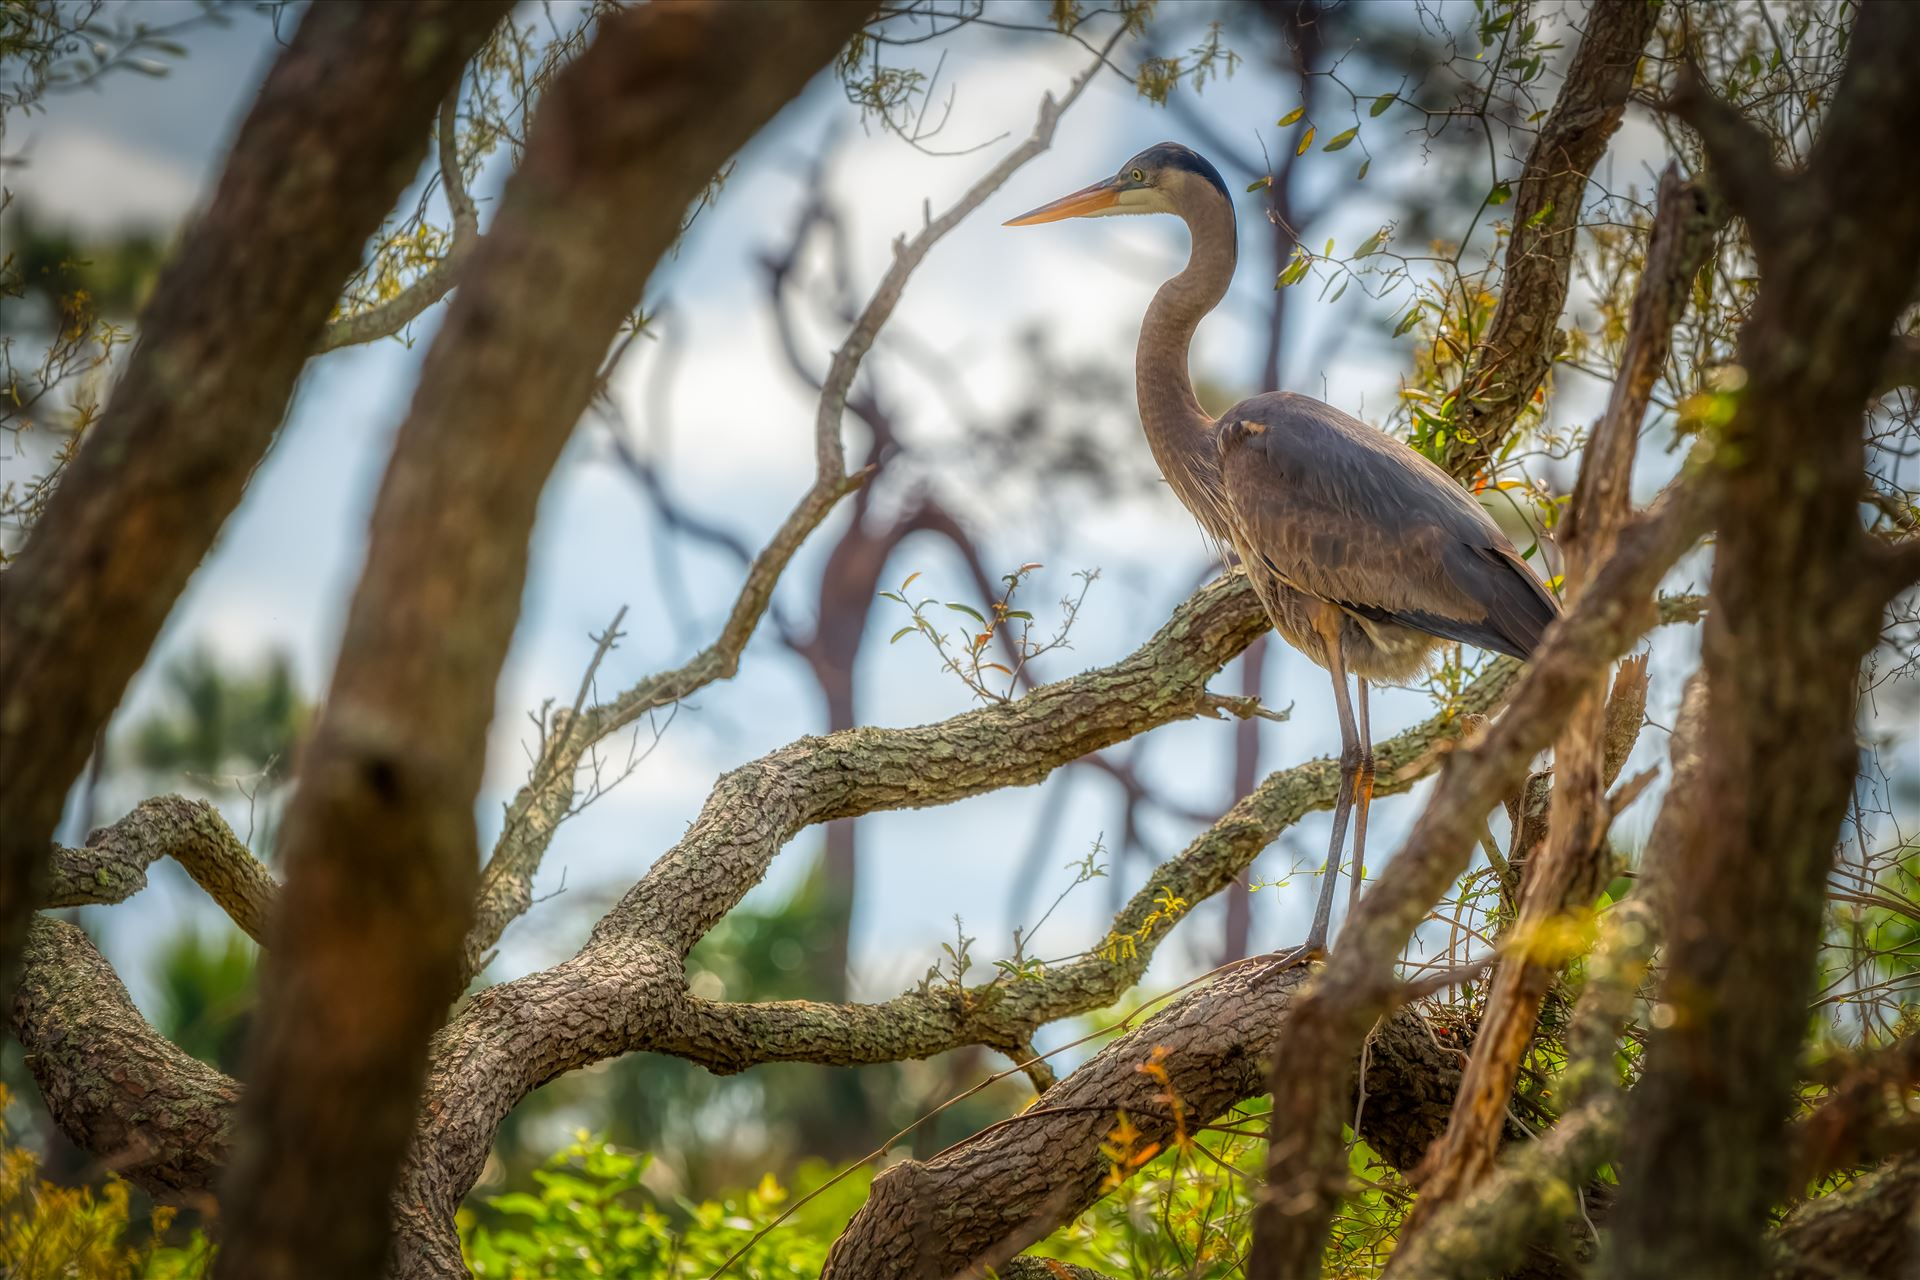 great blue heron great blue heron standing on oak tree near gator lake at St. Andrews State Park, Florida by Terry Kelly Photography